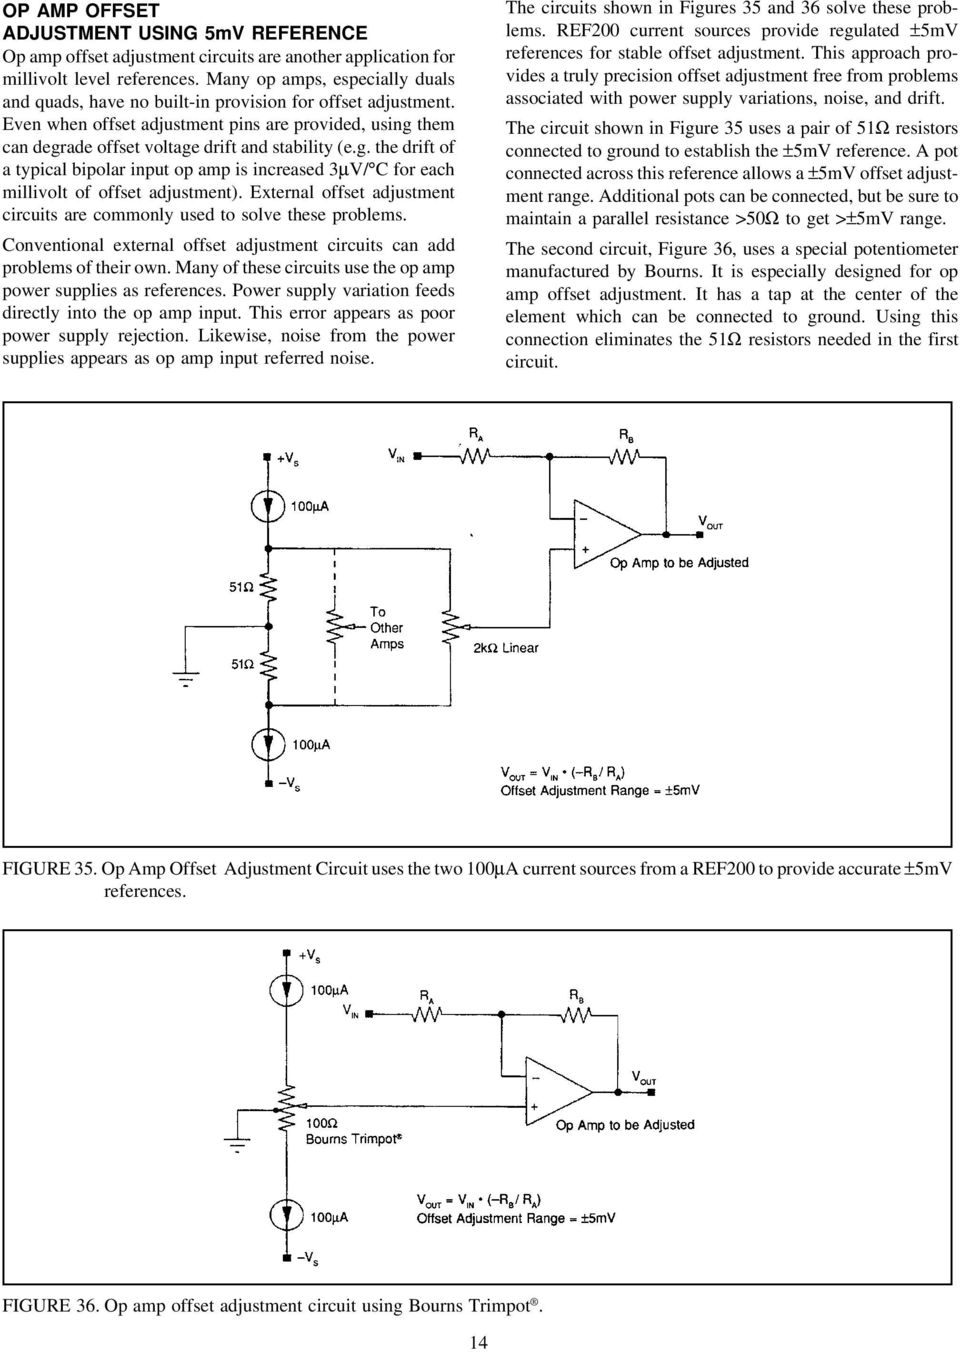 Design Of Fixed Current Sources Pdf The Circuit Below Uses A Low Cost Opamp To Add Precise G Drift Typical Bipolar Input Op Amp Is Increased 3v C